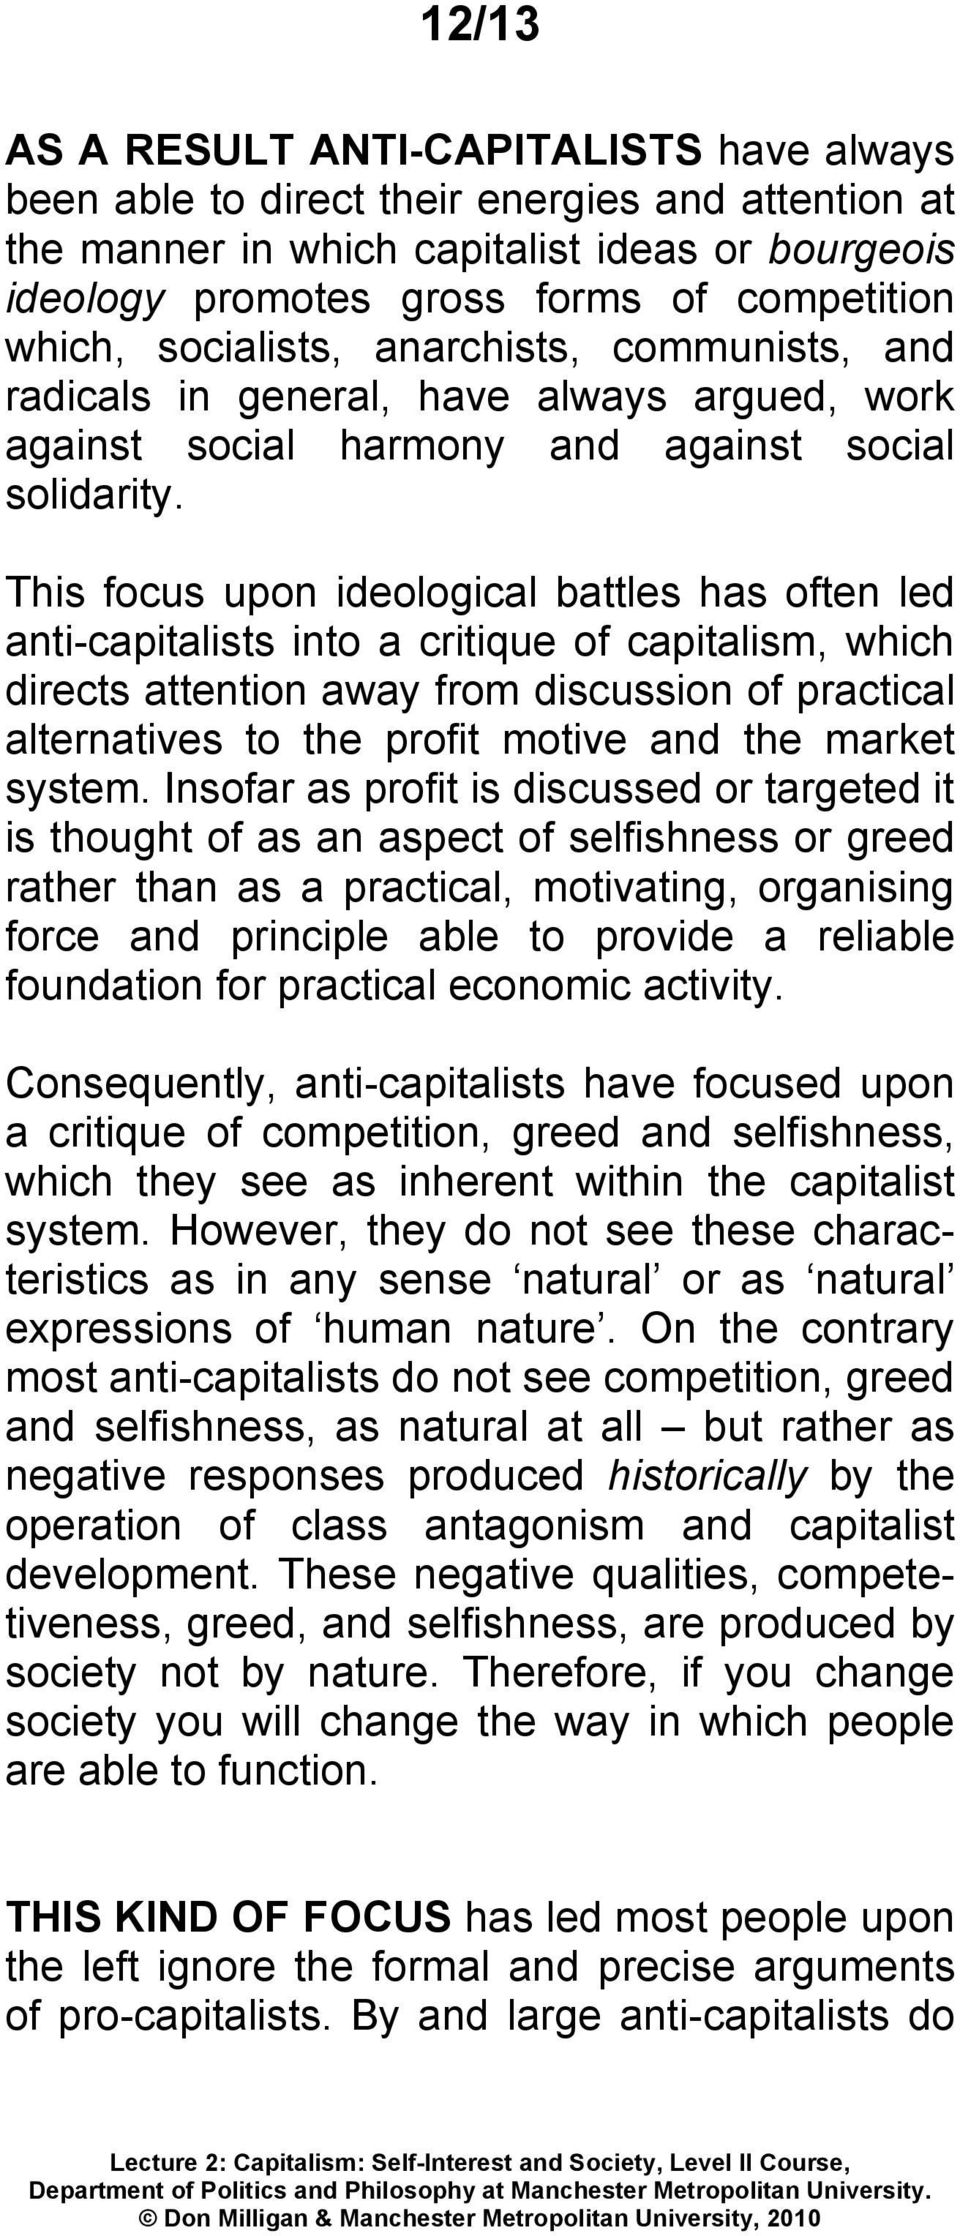 This focus upon ideological battles has often led anti-capitalists into a critique of capitalism, which directs attention away from discussion of practical alternatives to the profit motive and the